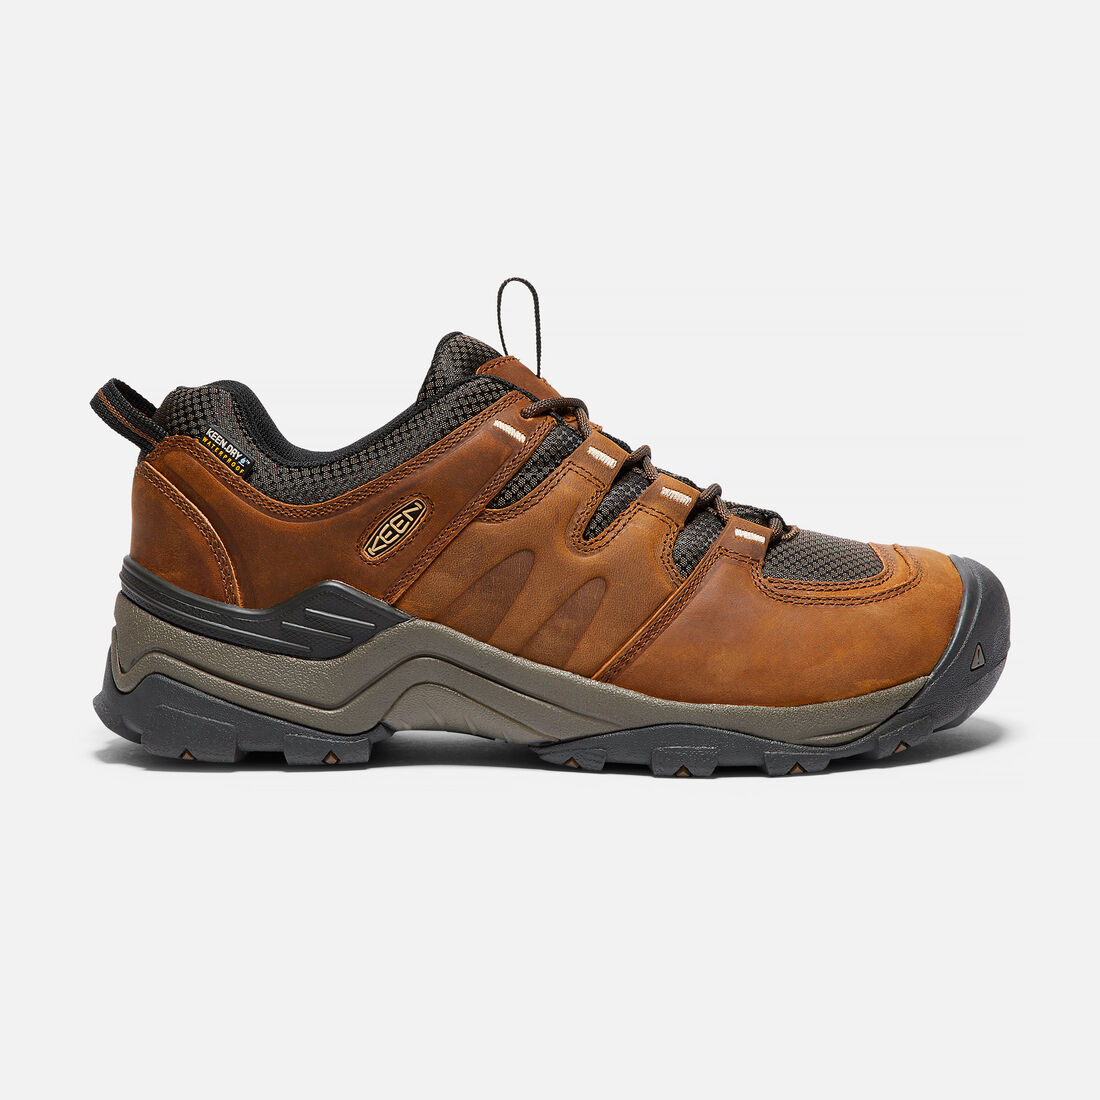 Men's GYPSUM II Waterproof in Grand Canyon/Dark Earth - large view.